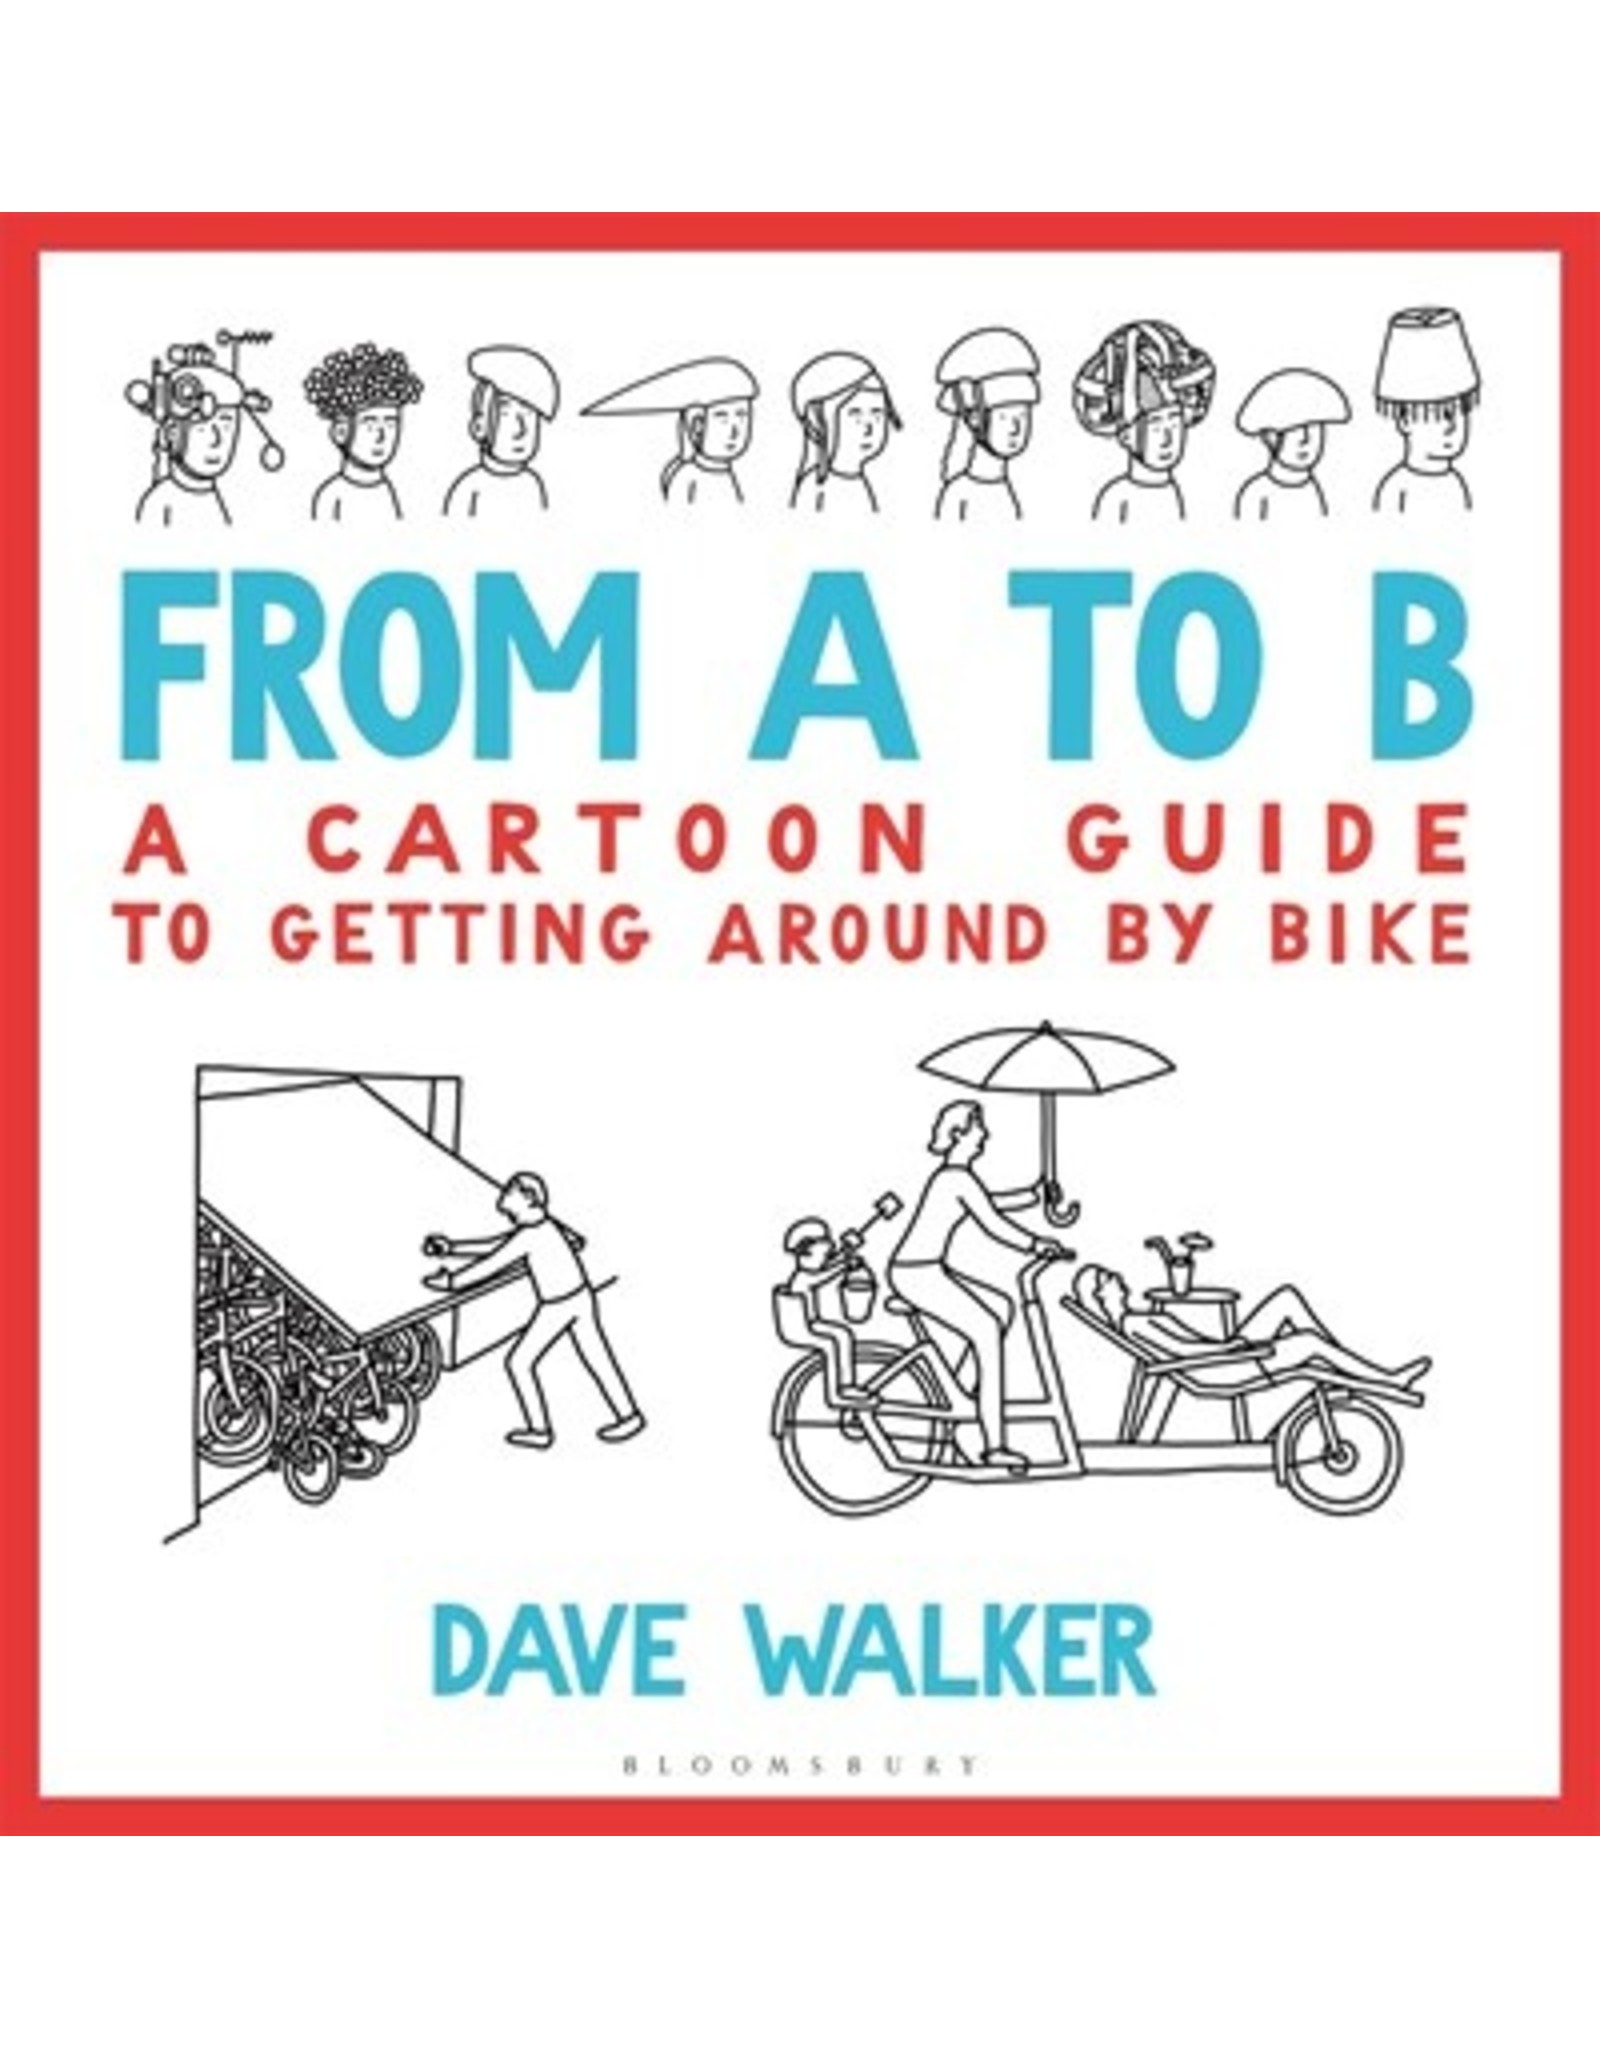 Books From A to B: A Cartoon Guide to Getting Around by Bike by Dave Walker